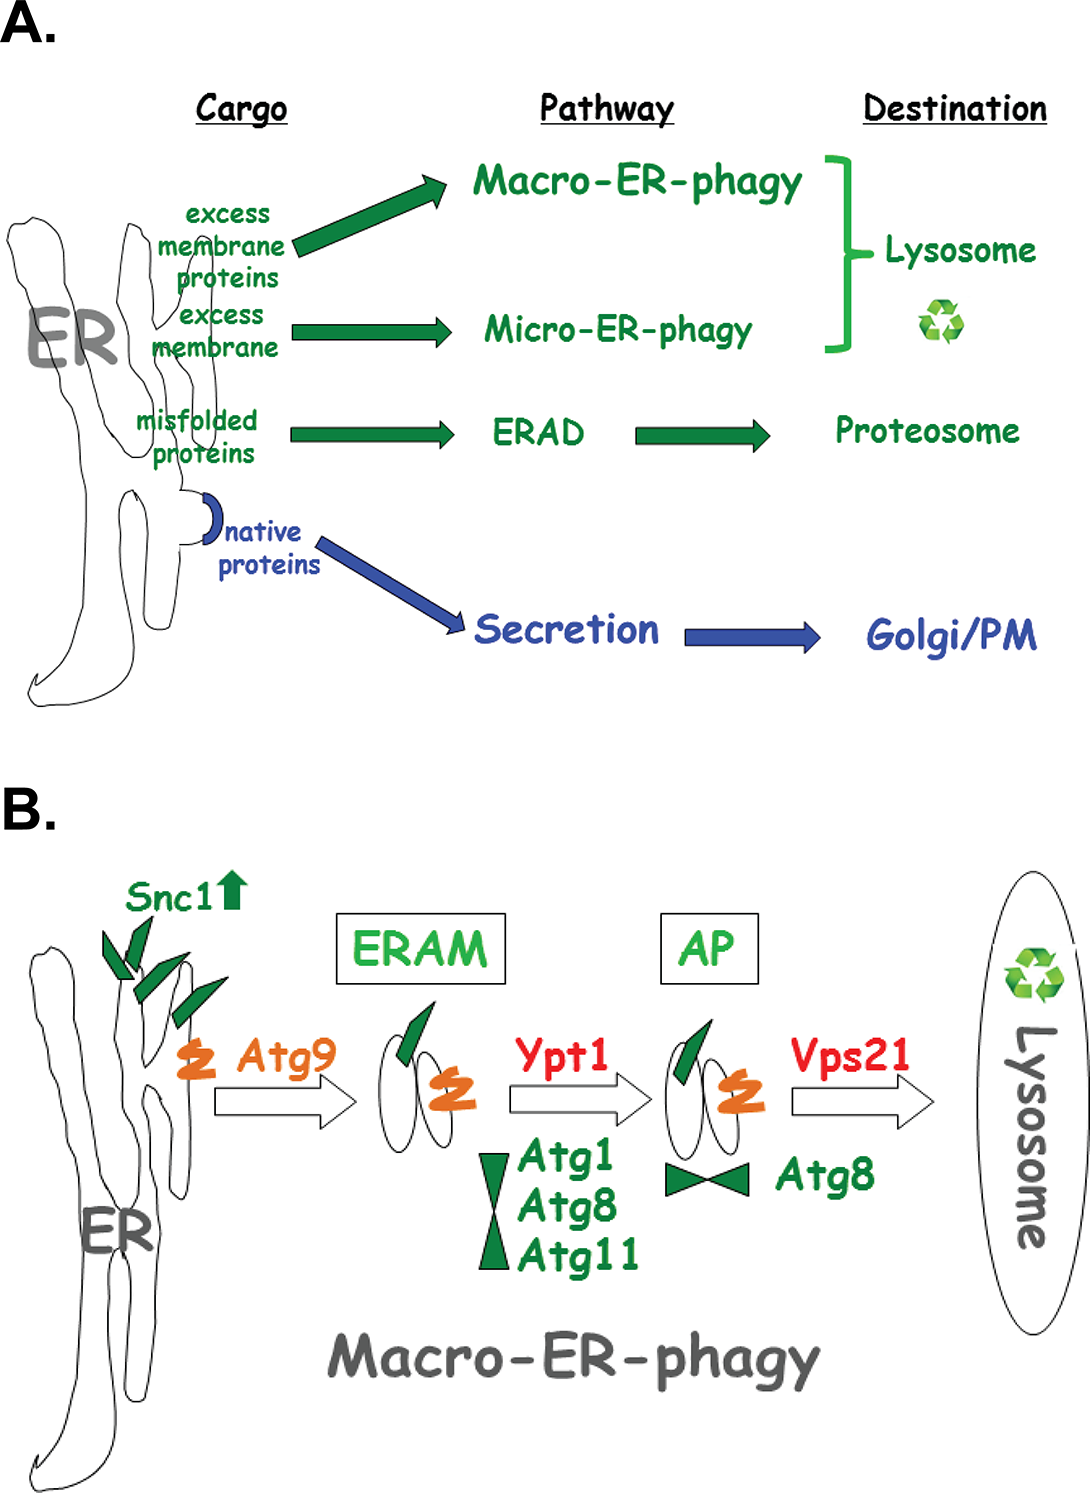 The macro-ER-phagy pathway and ERQC.